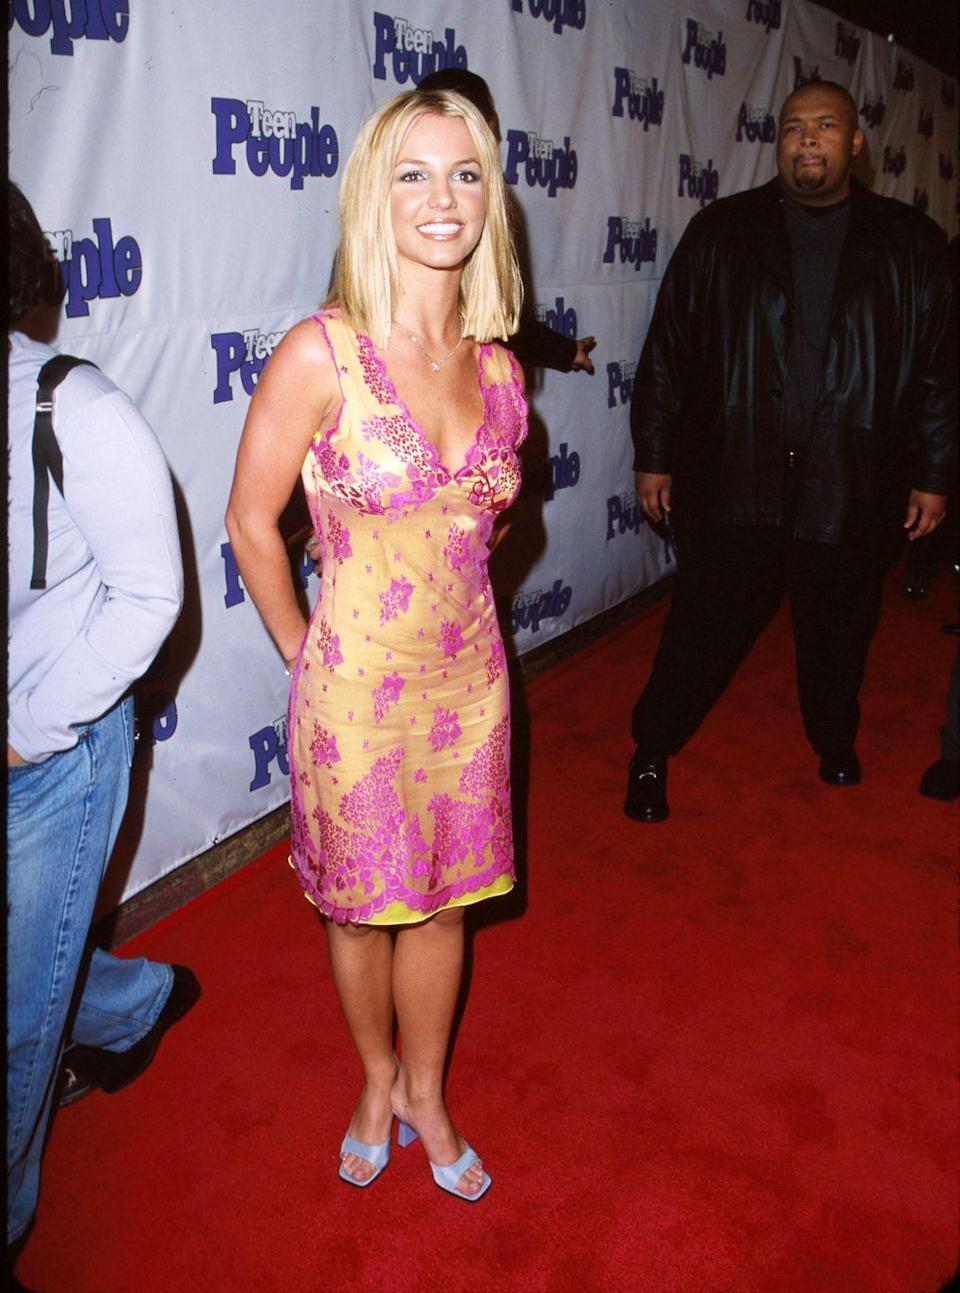 <p>Surprisingly, her square-toe aqua shoes are VERY much in right now. Who would have guessed the trend would make a comeback?</p>